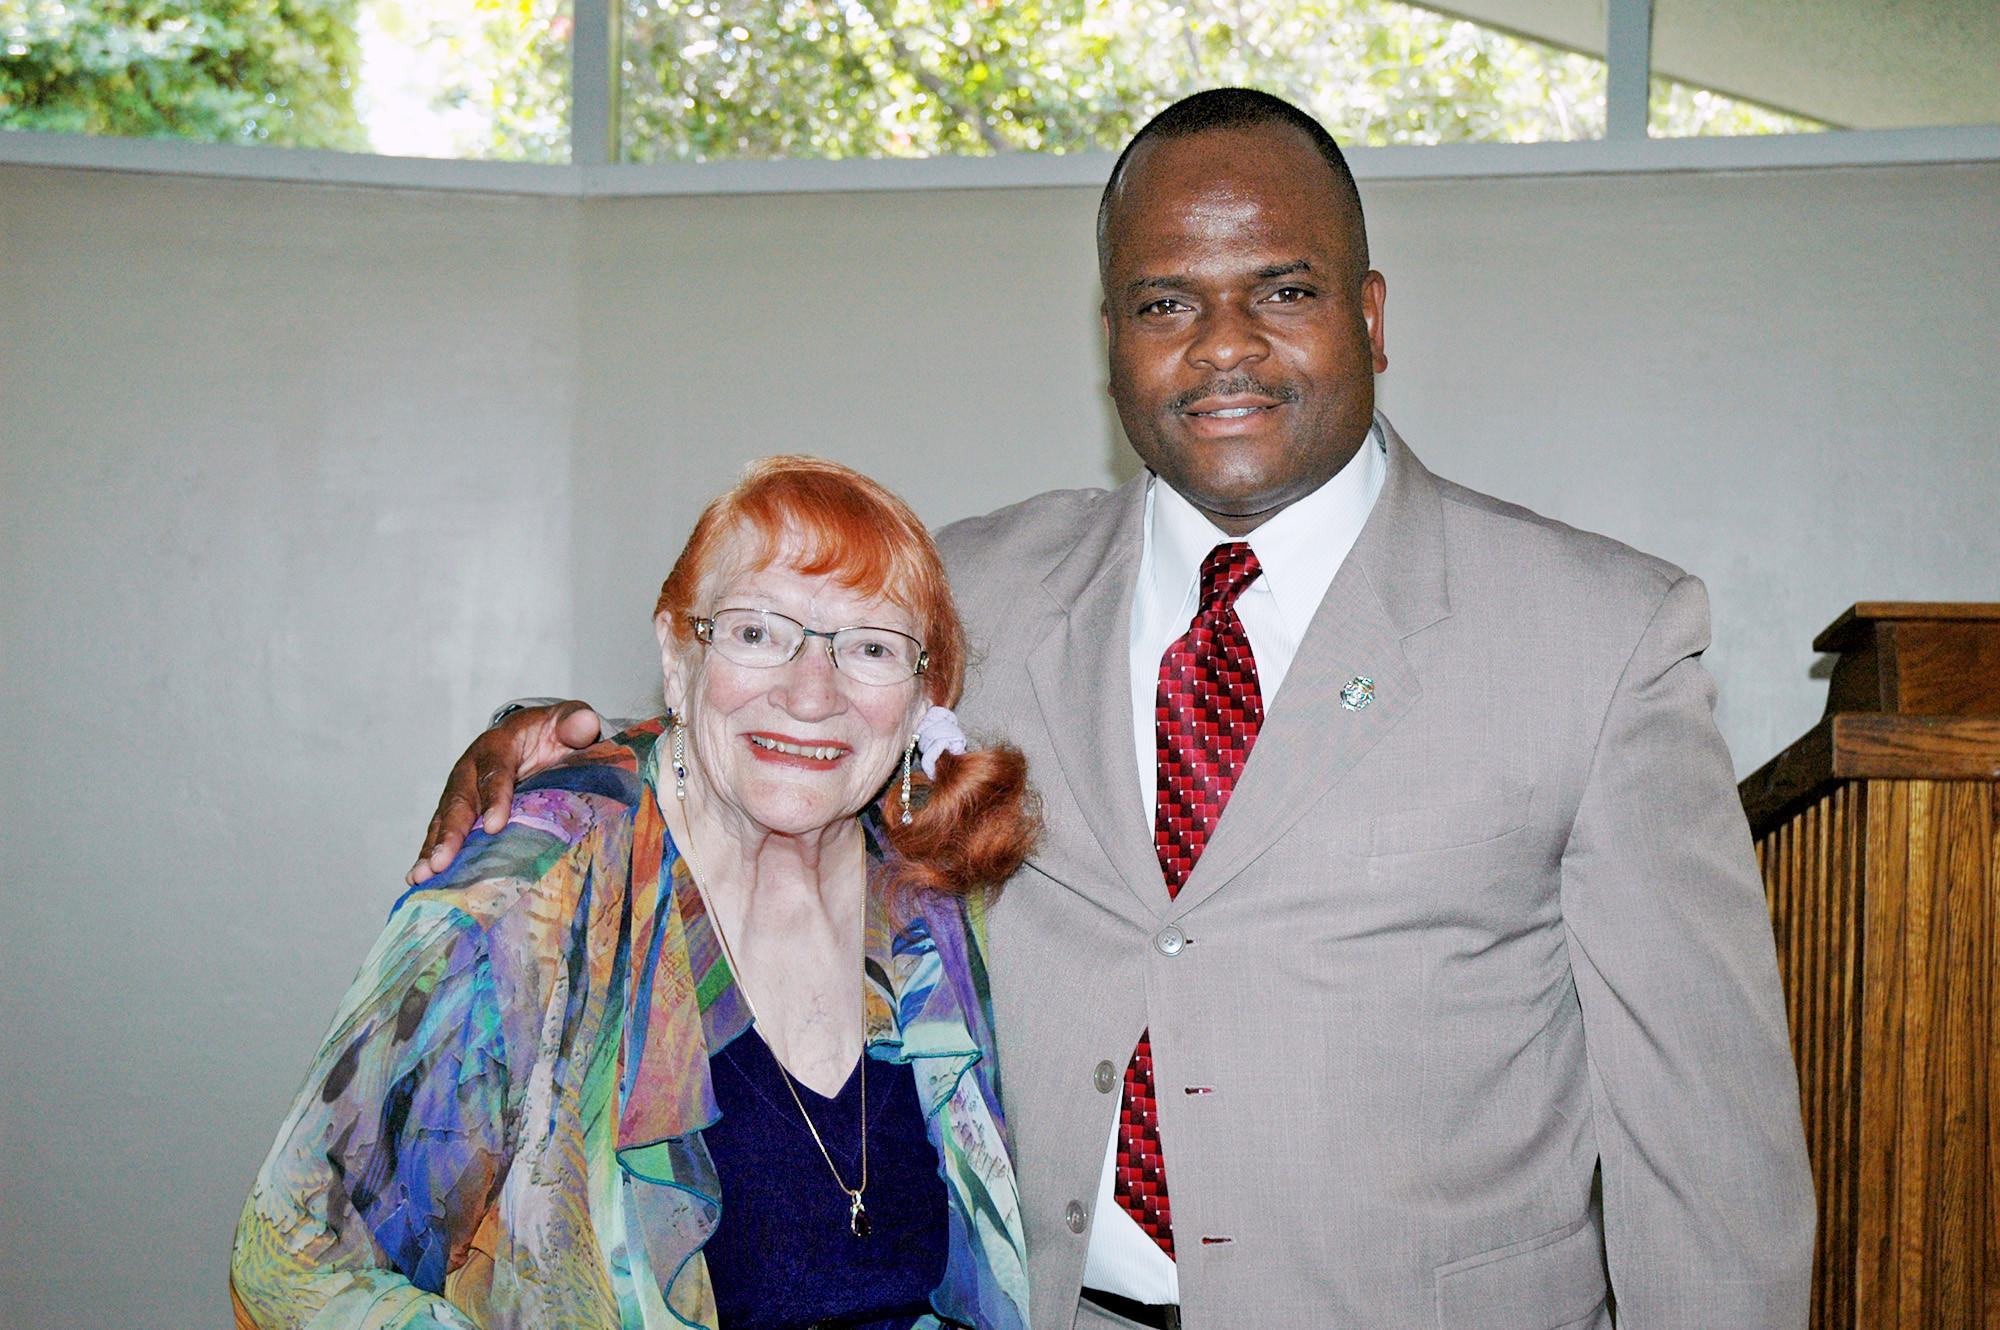 L'aureole President Jeannine Jones with special guest and master of ceremonies Harold Scoggins, Glendale fire chief, during the Perennial Rose Luncheon and Fashion Show at the La Cañada Flintridge Country Club.